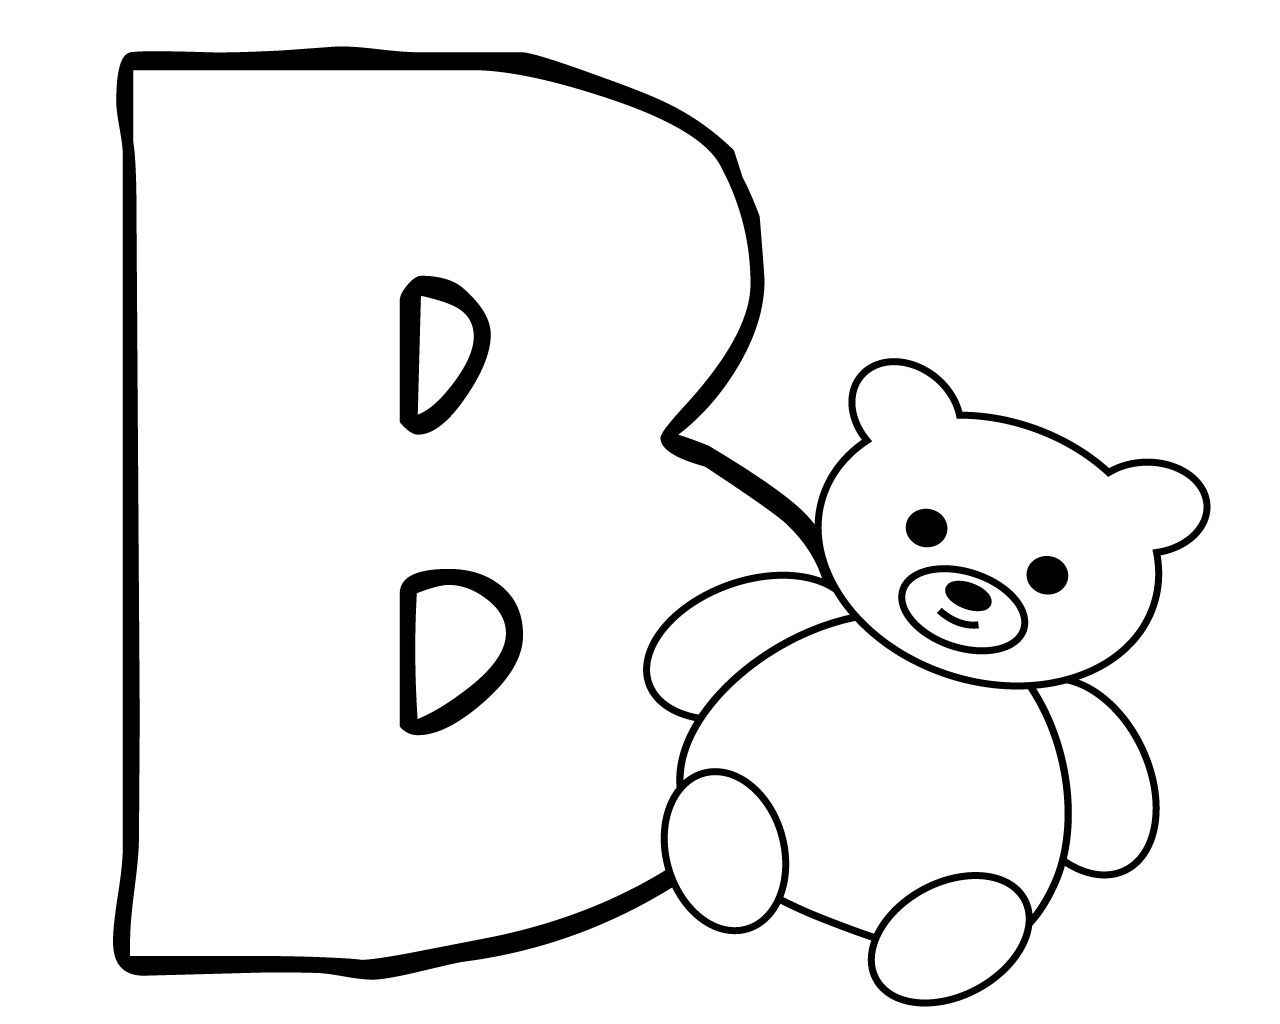 Letter B Coloring Pages For Preschoolers Letter B Coloring Pages Coloring Pages Coloring Pages For Kids